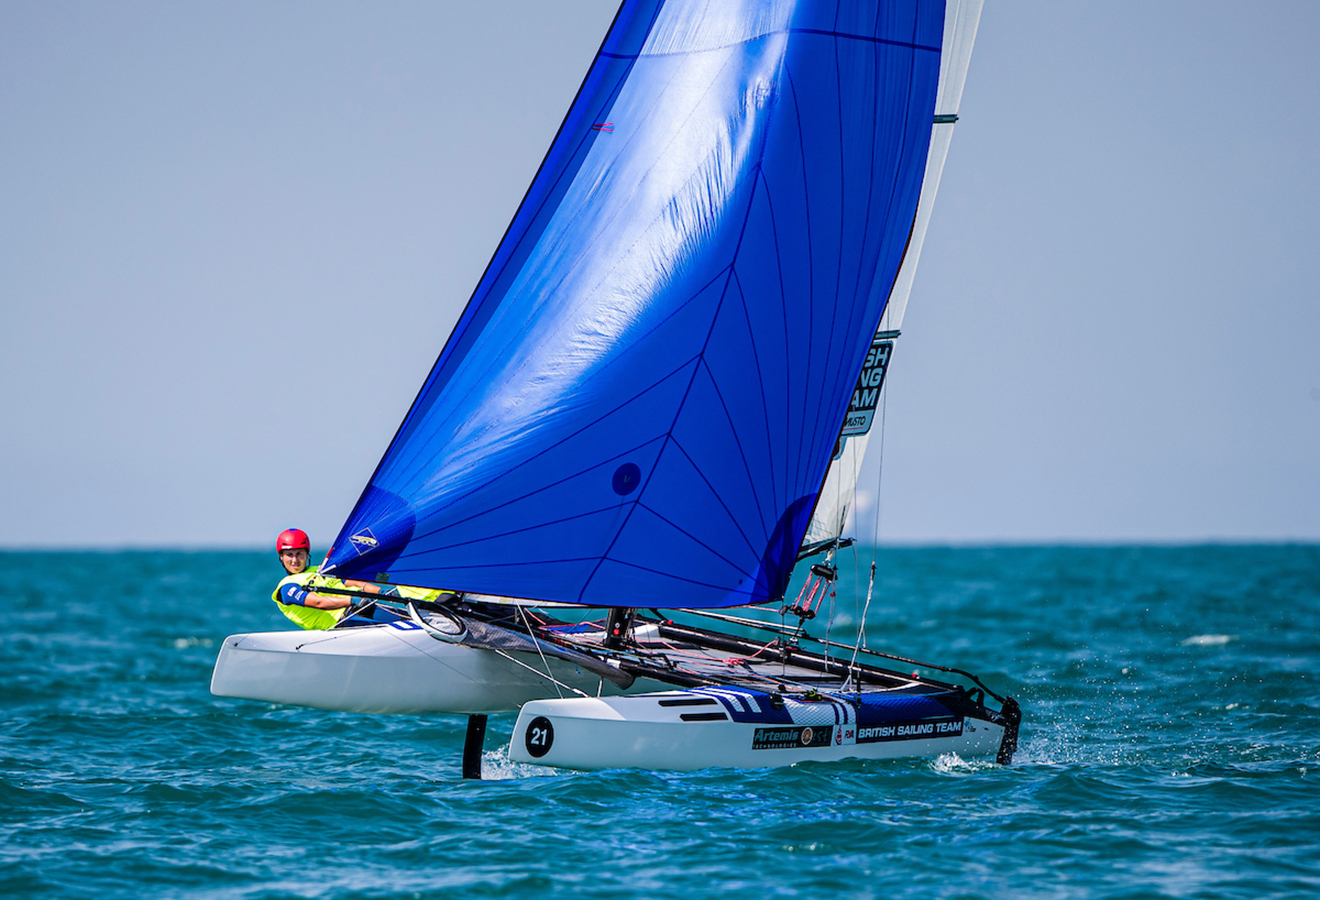 John Gimson and Anna Burnet lead the 49er, 49erFX, Nacra 17 World Championships.